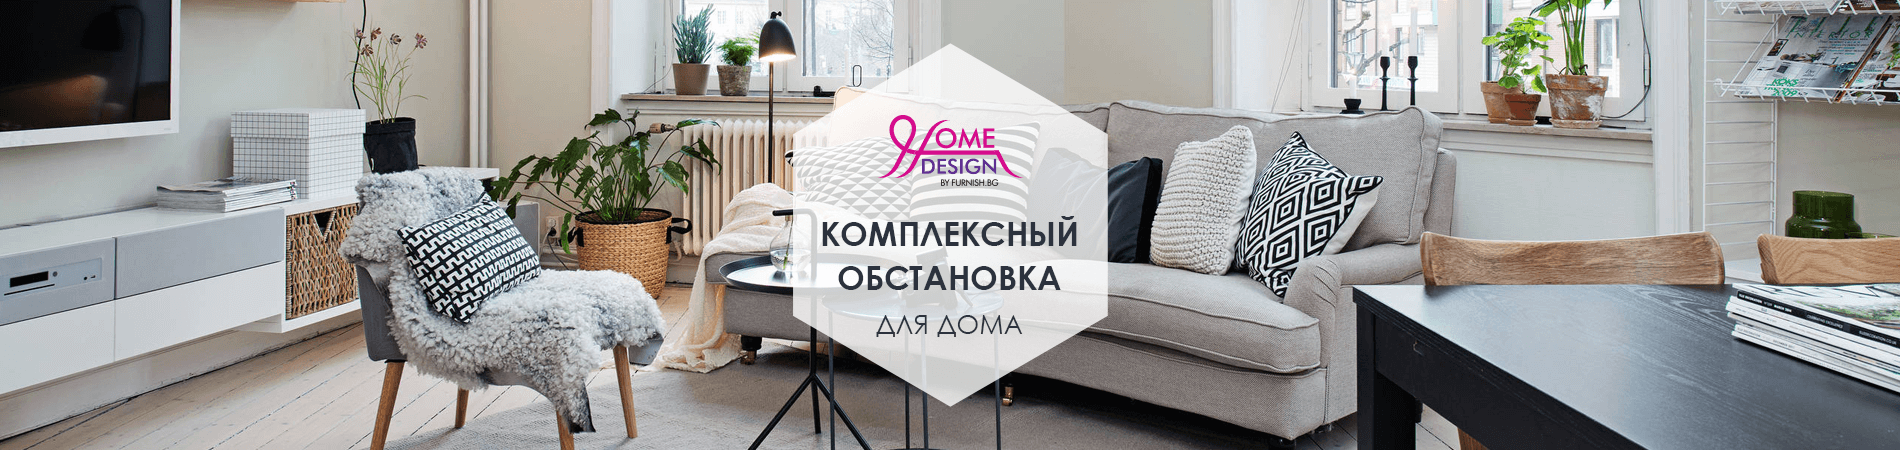 homedesign-november-ru